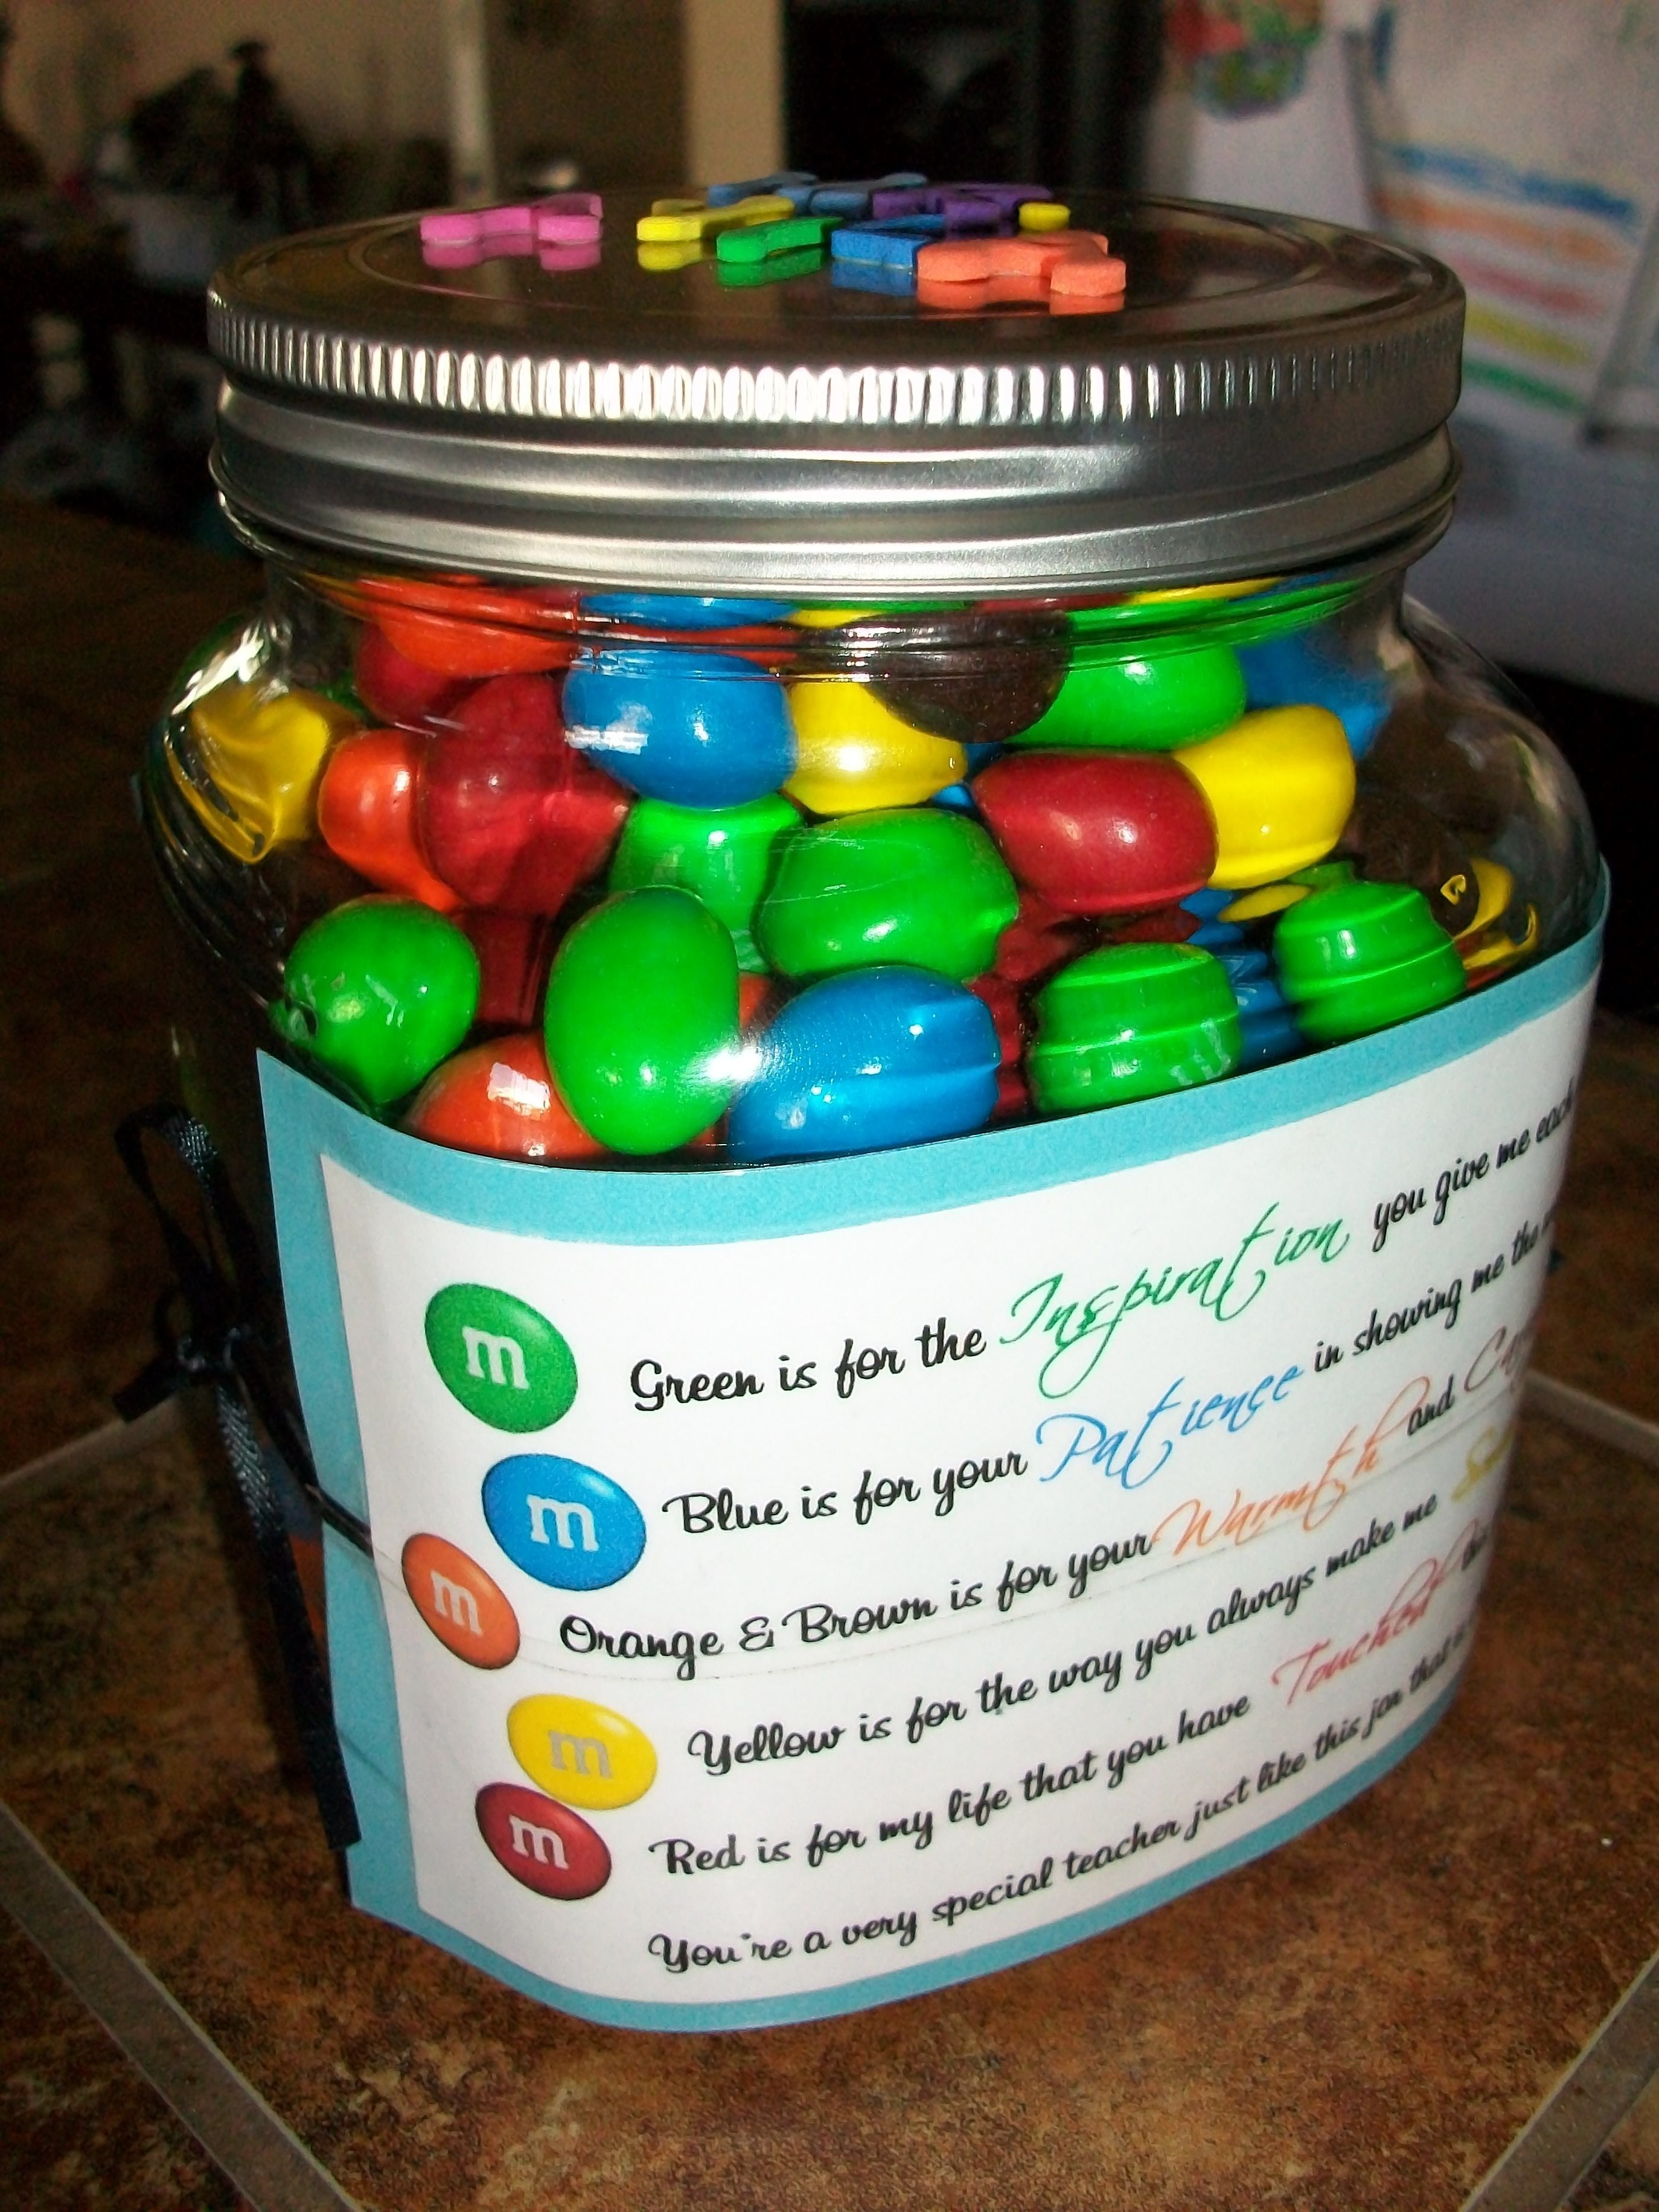 last day of school gift for my son's teacher. bought a jar from